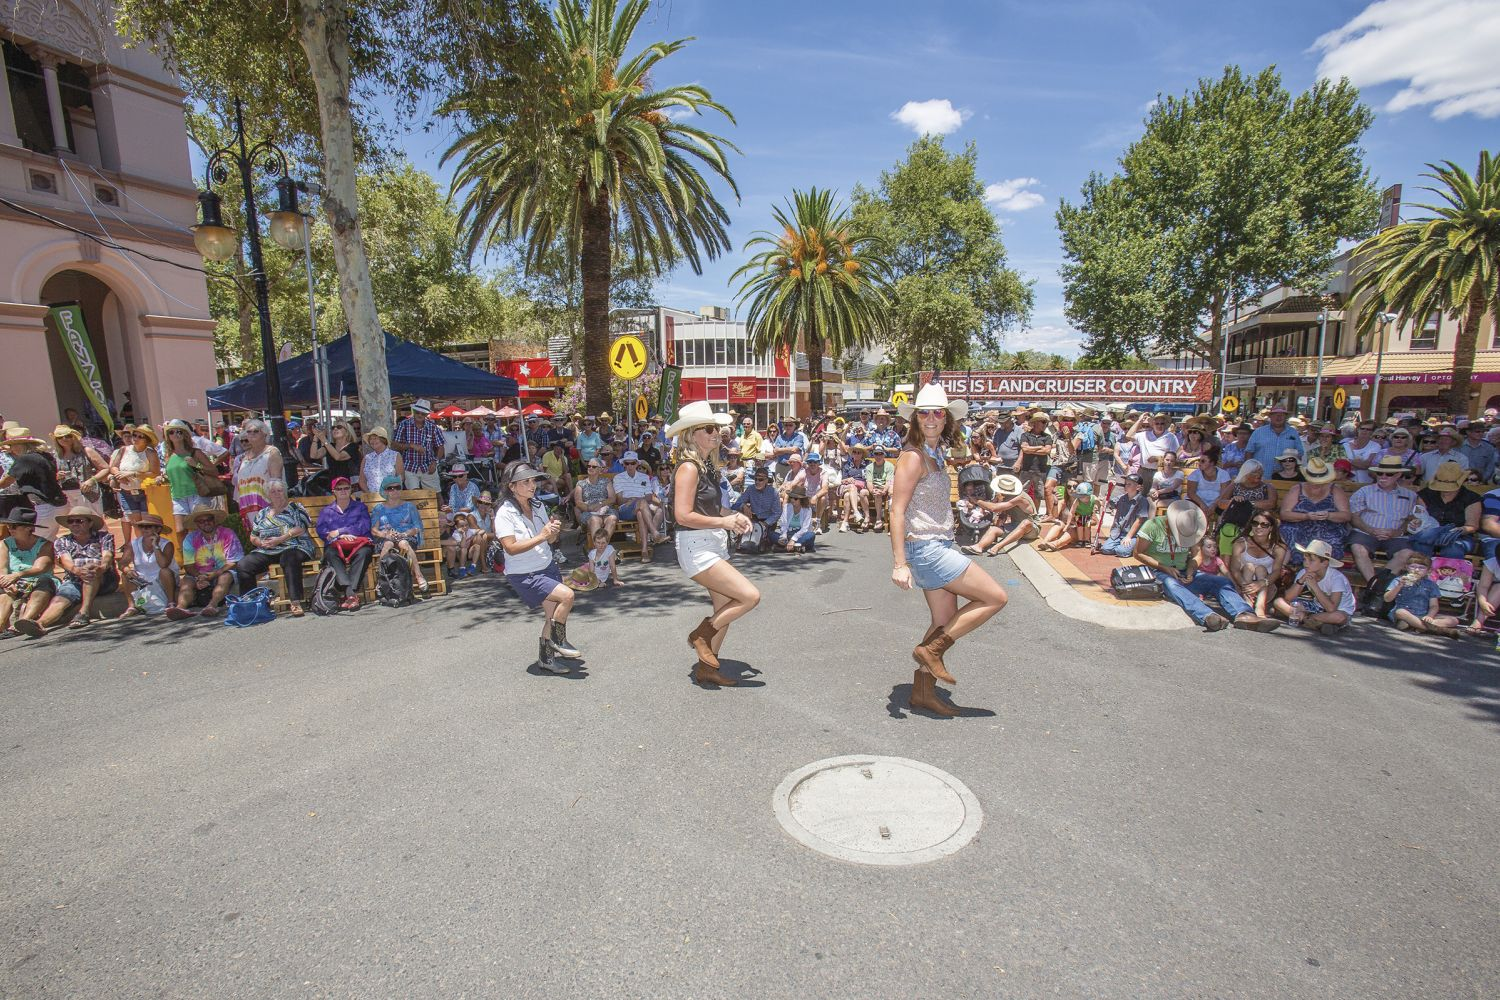 Women line dancing during the Tamworth Country Music Festival, Australia